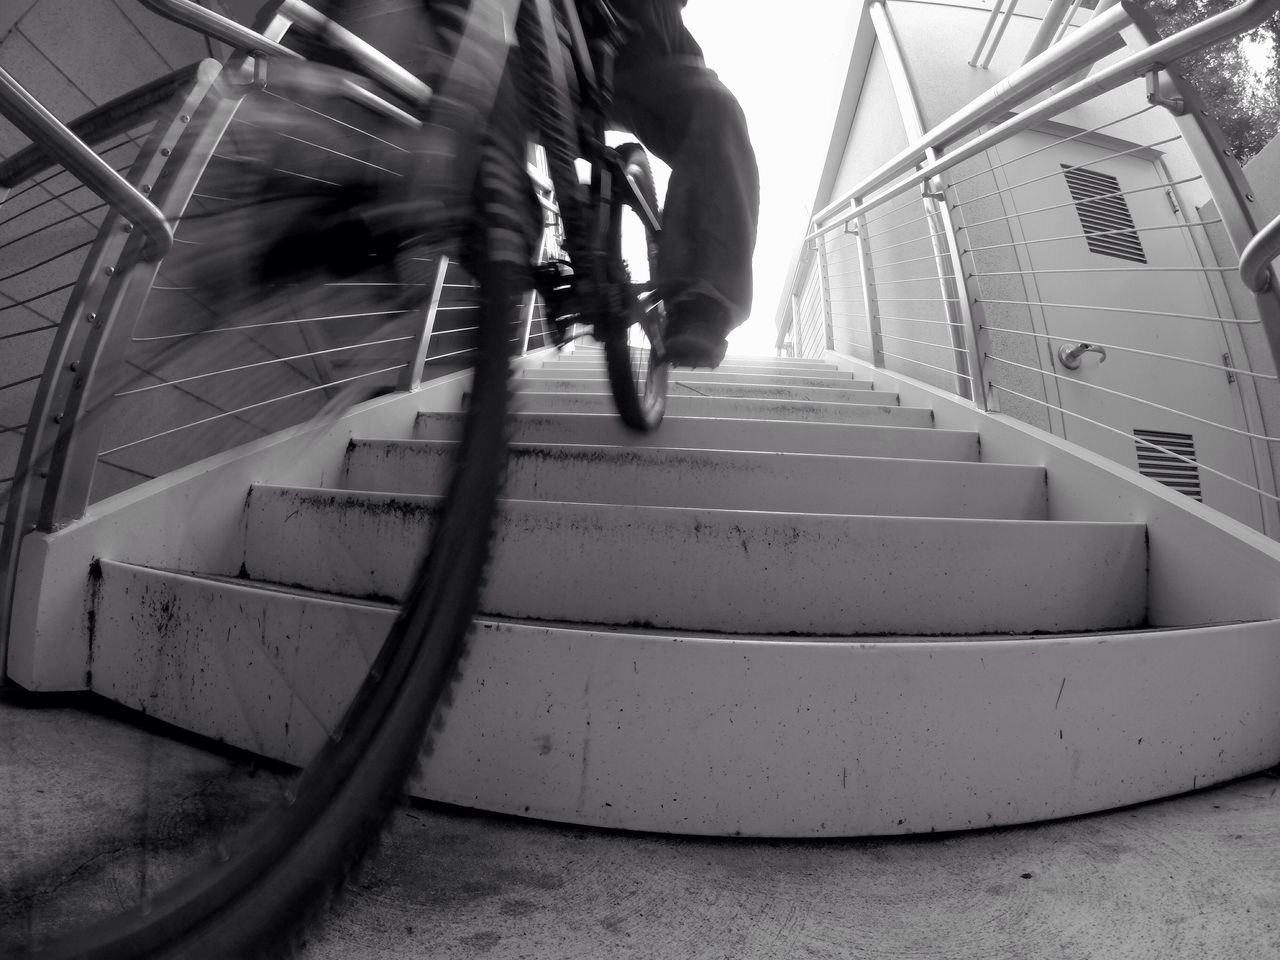 last shot of this series... promise😉 Wheel Tired Tyre Bike Bicycle MTB Mountainbike Perspective Streetphotography Urbanphotography Black And White Black & White Blackandwhite Blurred Motion Steps Steps And Staircases Built Structure Staircase Action Motion Capturing Movement EyeEm Best Shots No Budget Photography